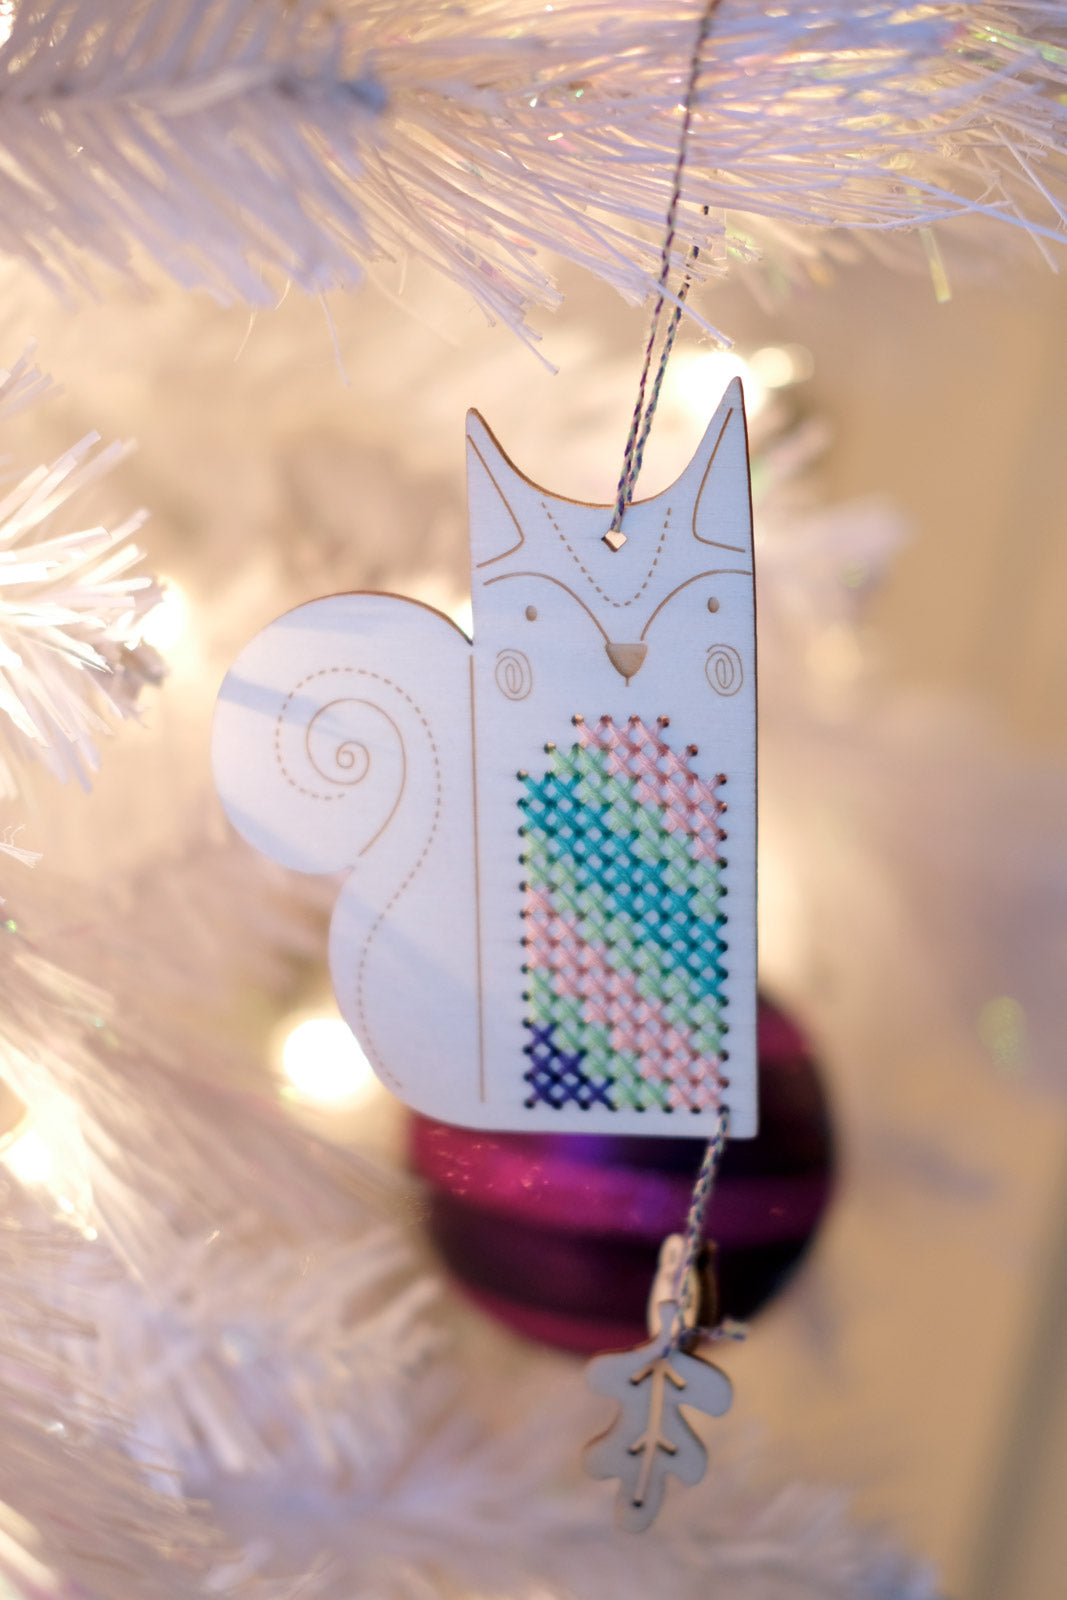 Stuart the Squirrel Crafty Like a Fox ornament hanging on a white tree